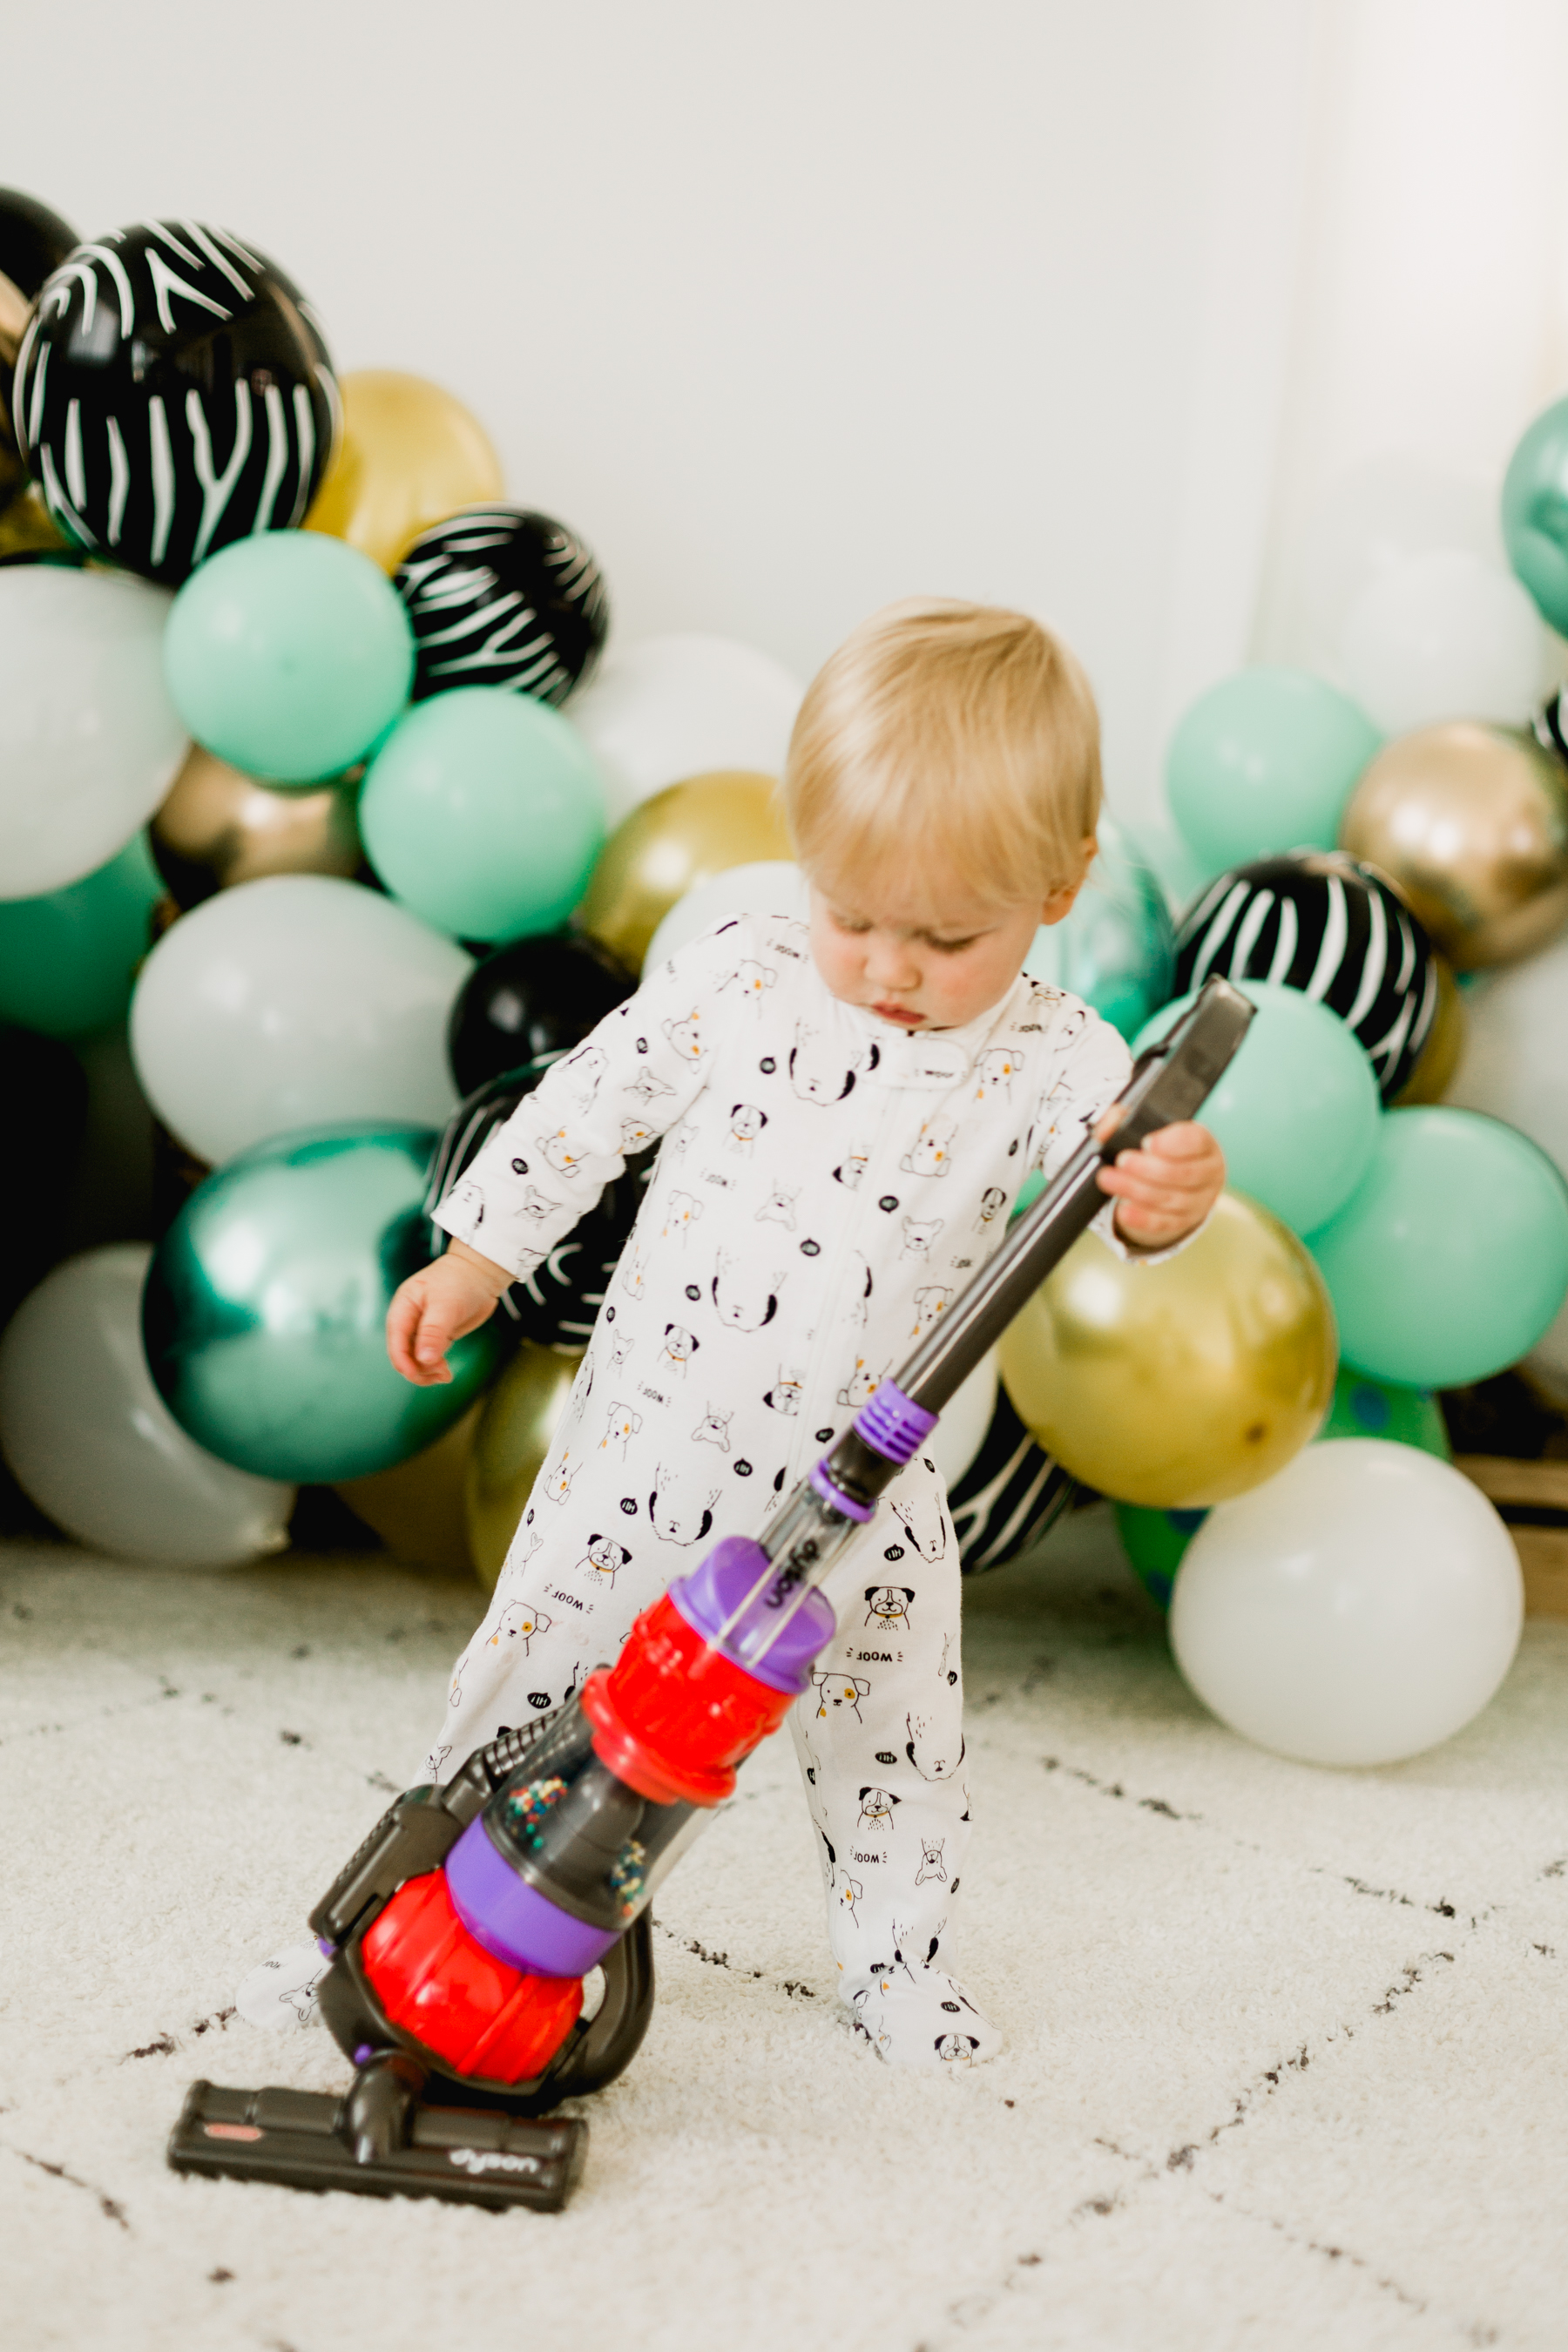 Tate's-First-Birthday-52.jpg